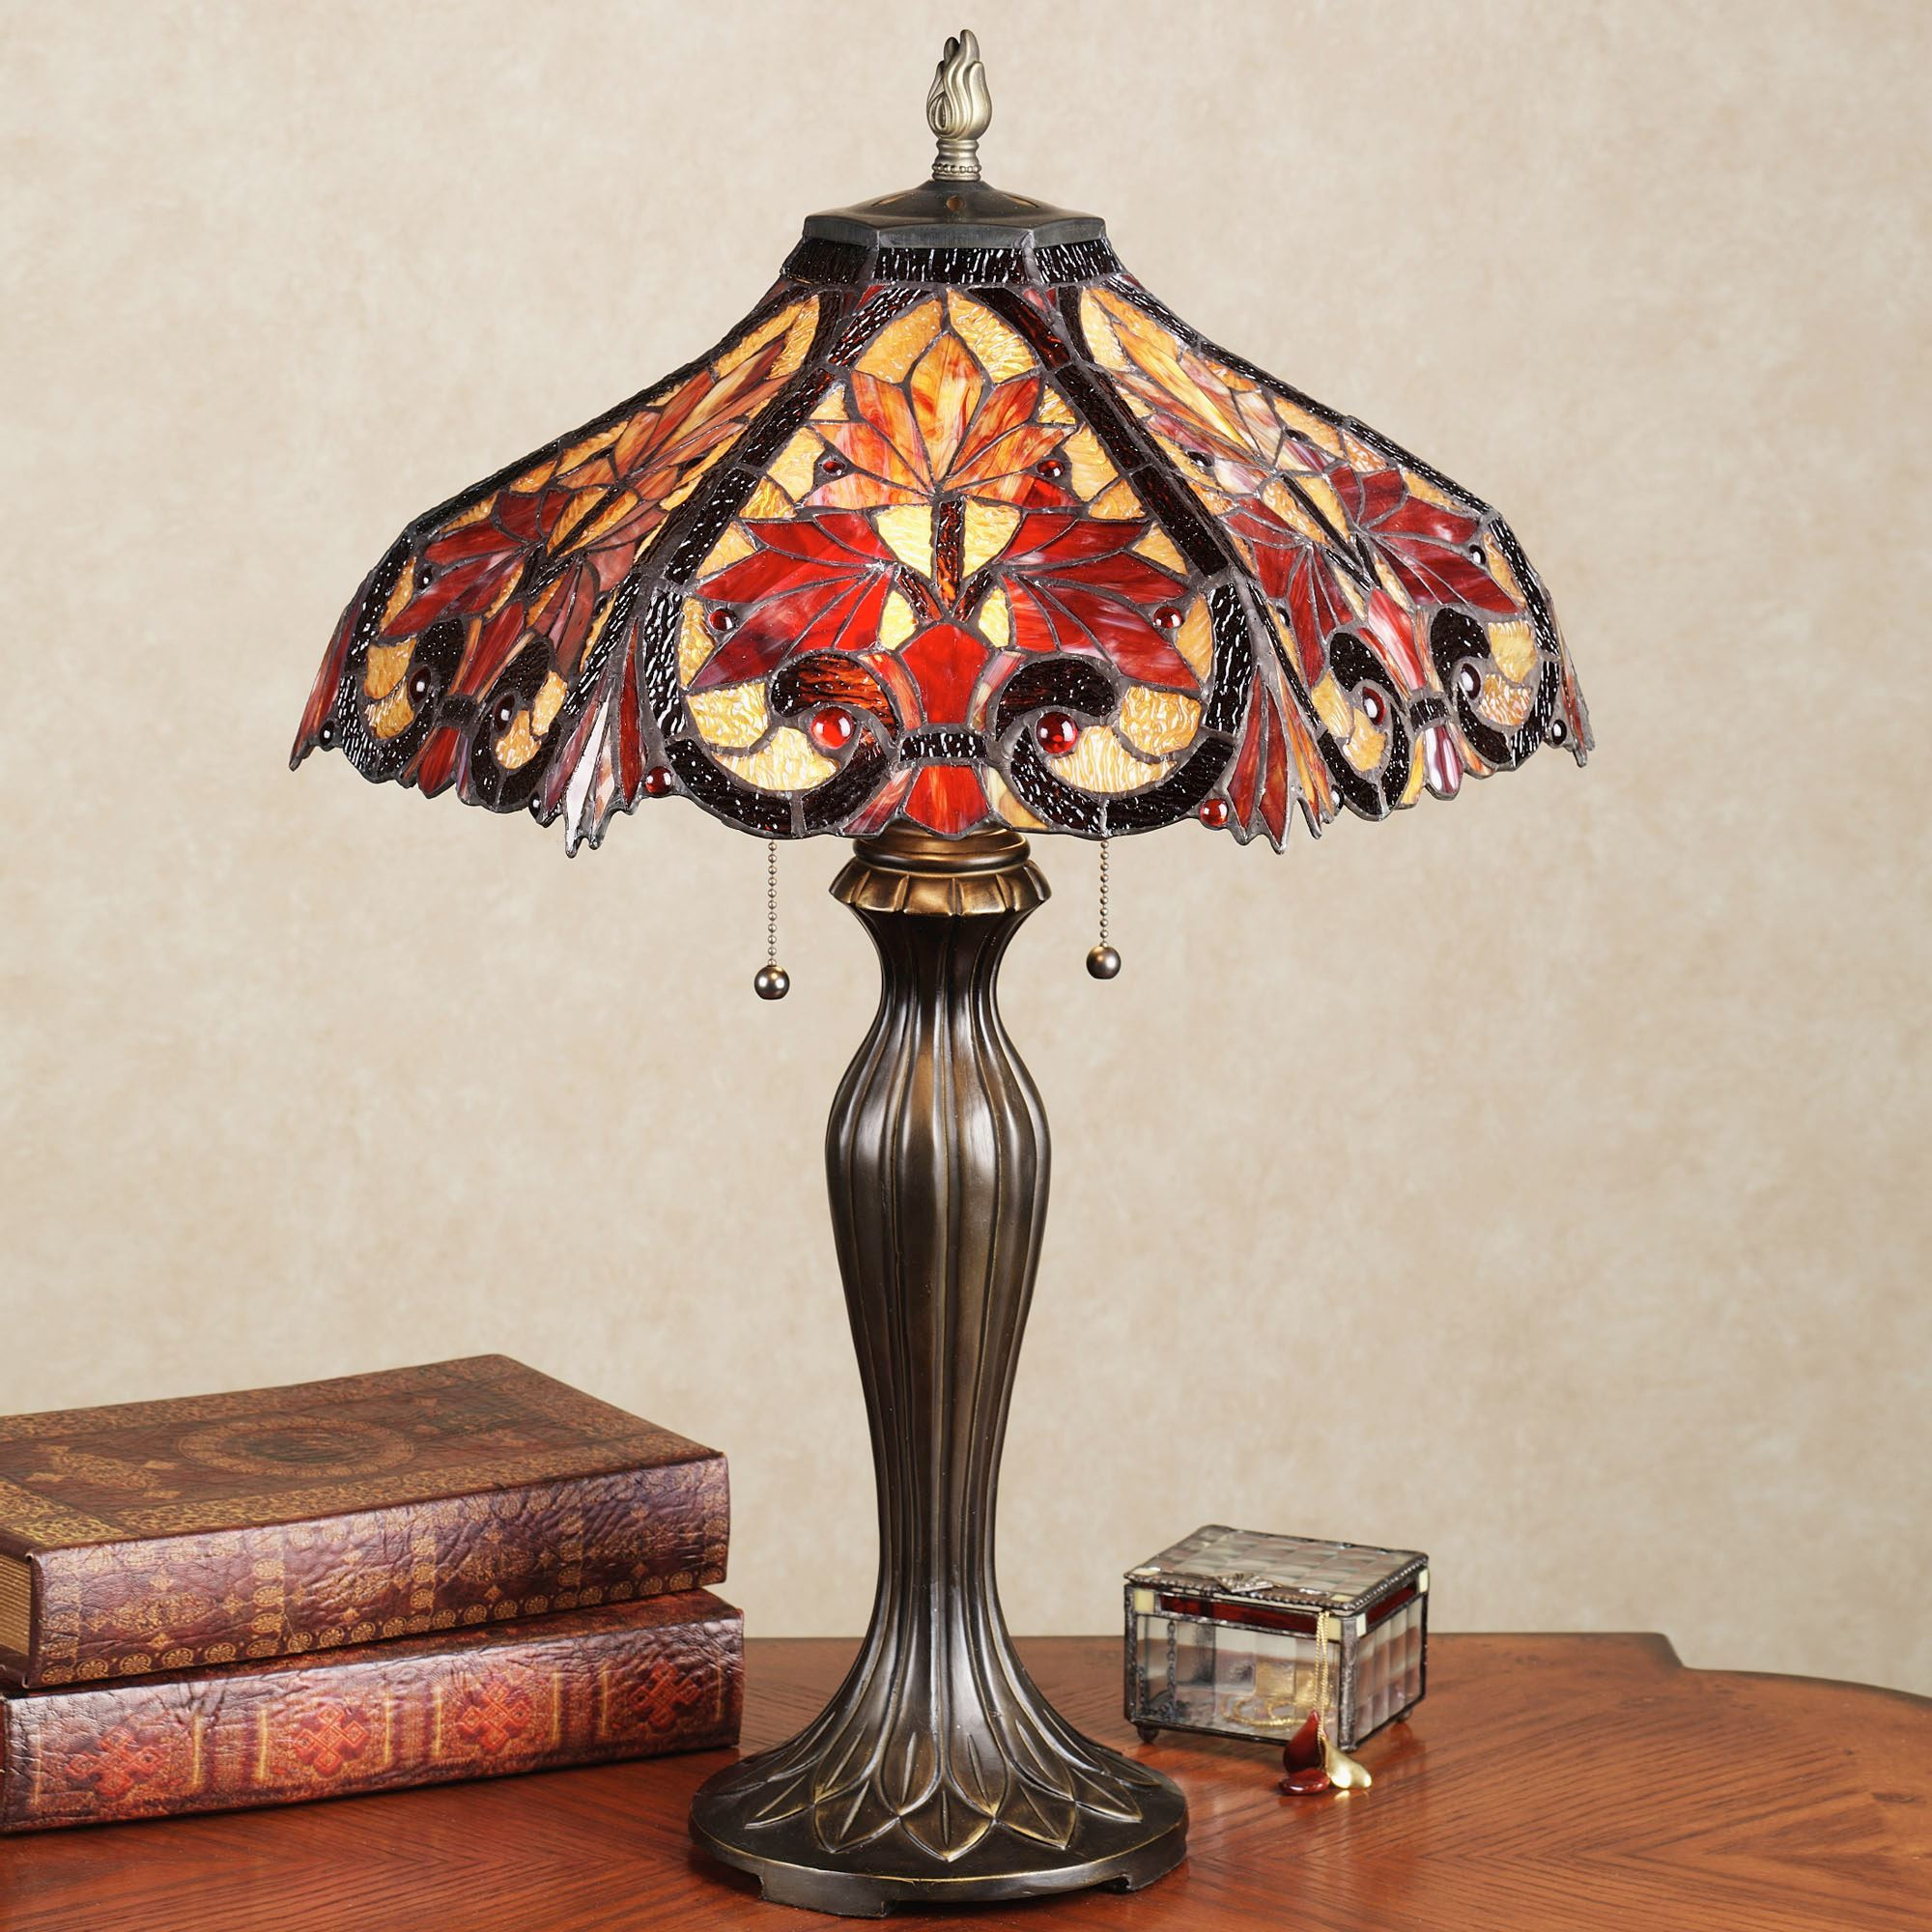 10 Benefits Of Stained Glass Lamps Warisan Lighting